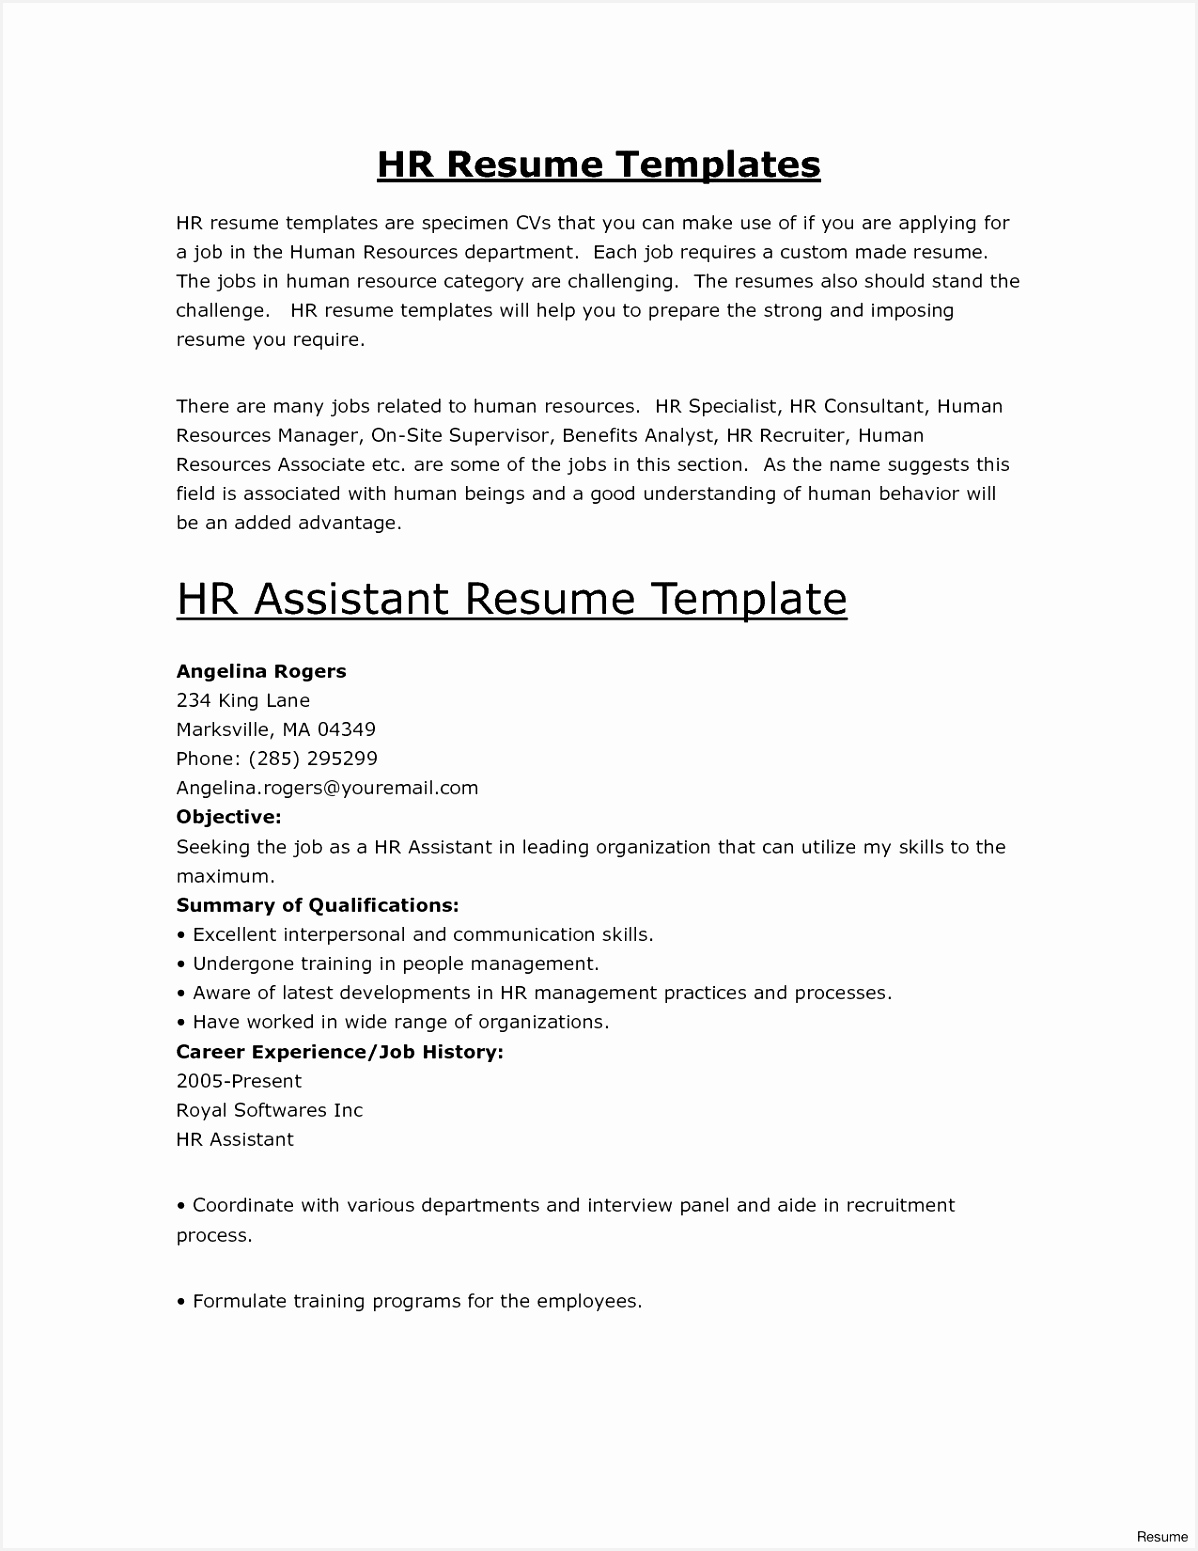 Examples Resumes for Jobs A0k4j Inspirational Example Job Resume Beautiful Luxury Examples Resumes Ecologist Of Examples Resumes for Jobs Nfcpi Awesome How Do I Write A Resume for A Job Example Typing A Resume Fresh